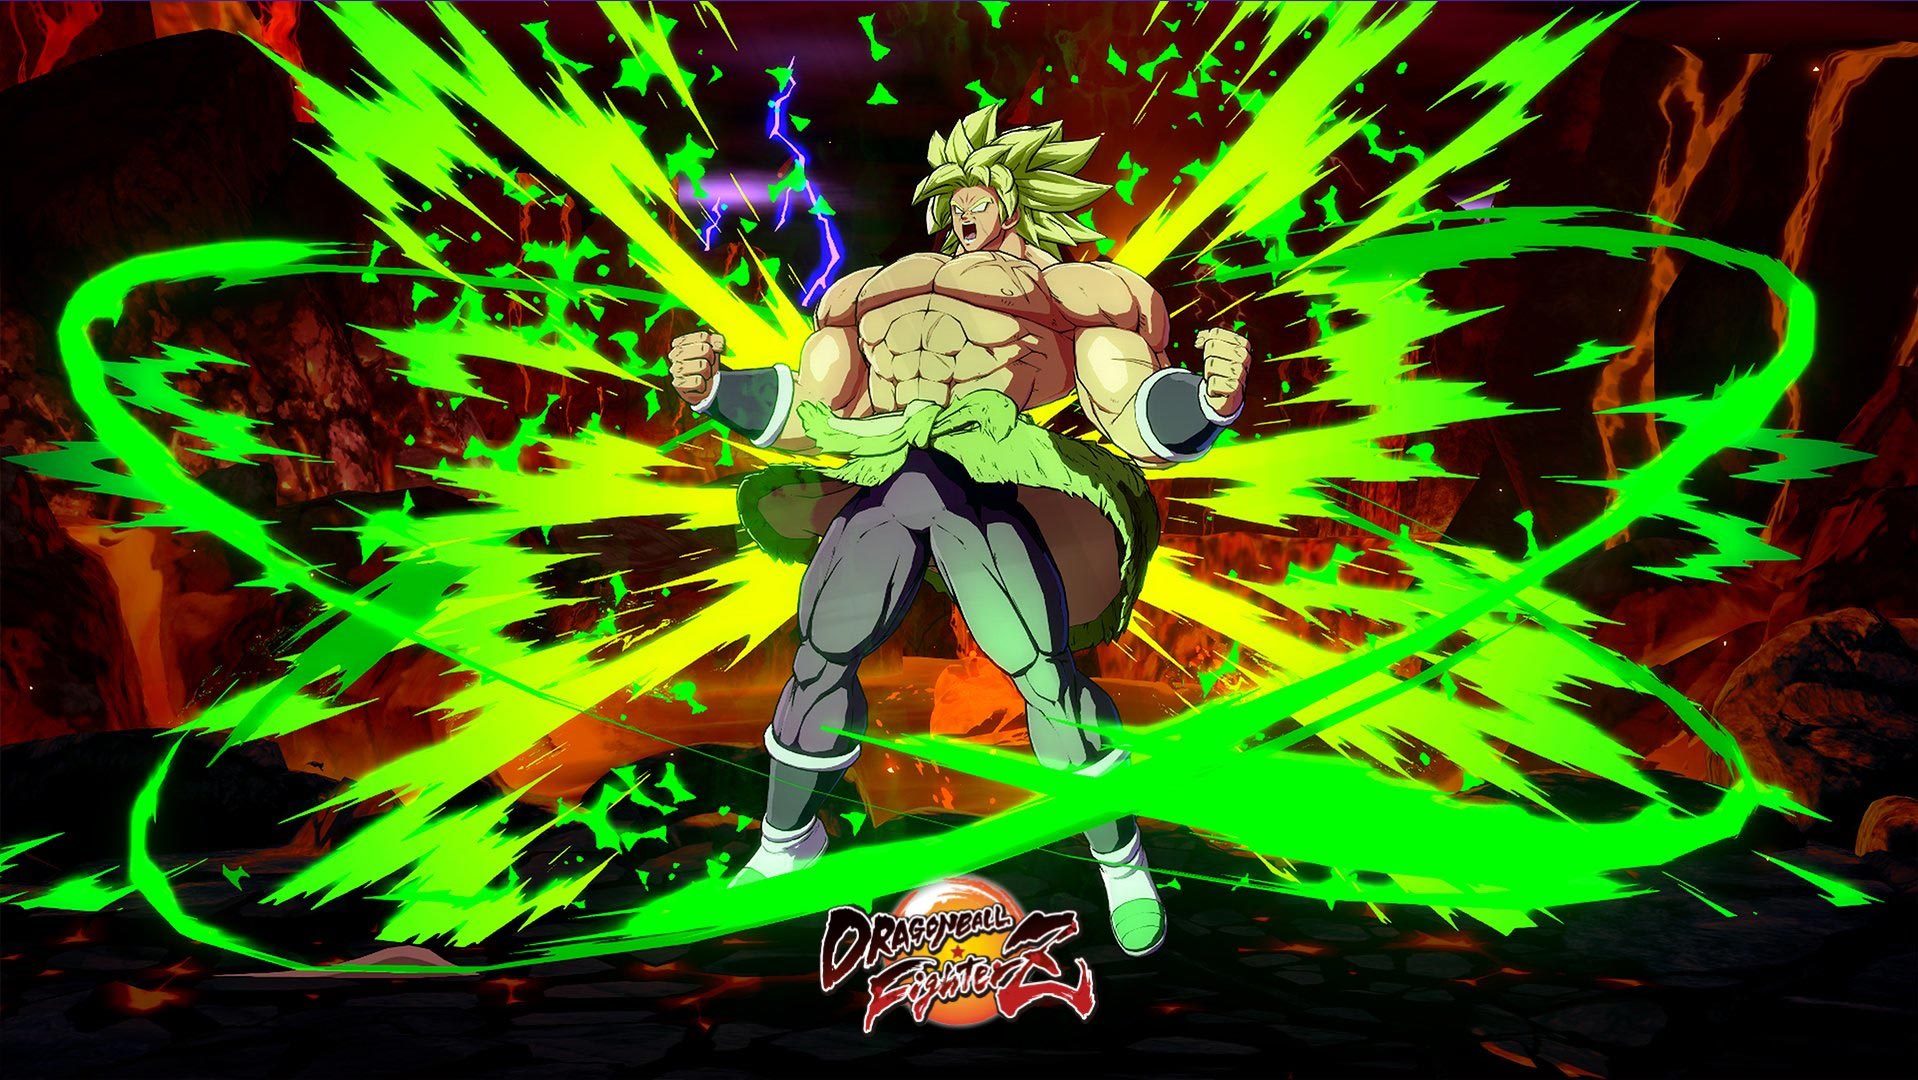 New Super Broly screenshots in Dragon Ball FighterZ 4 out of 4 image gallery